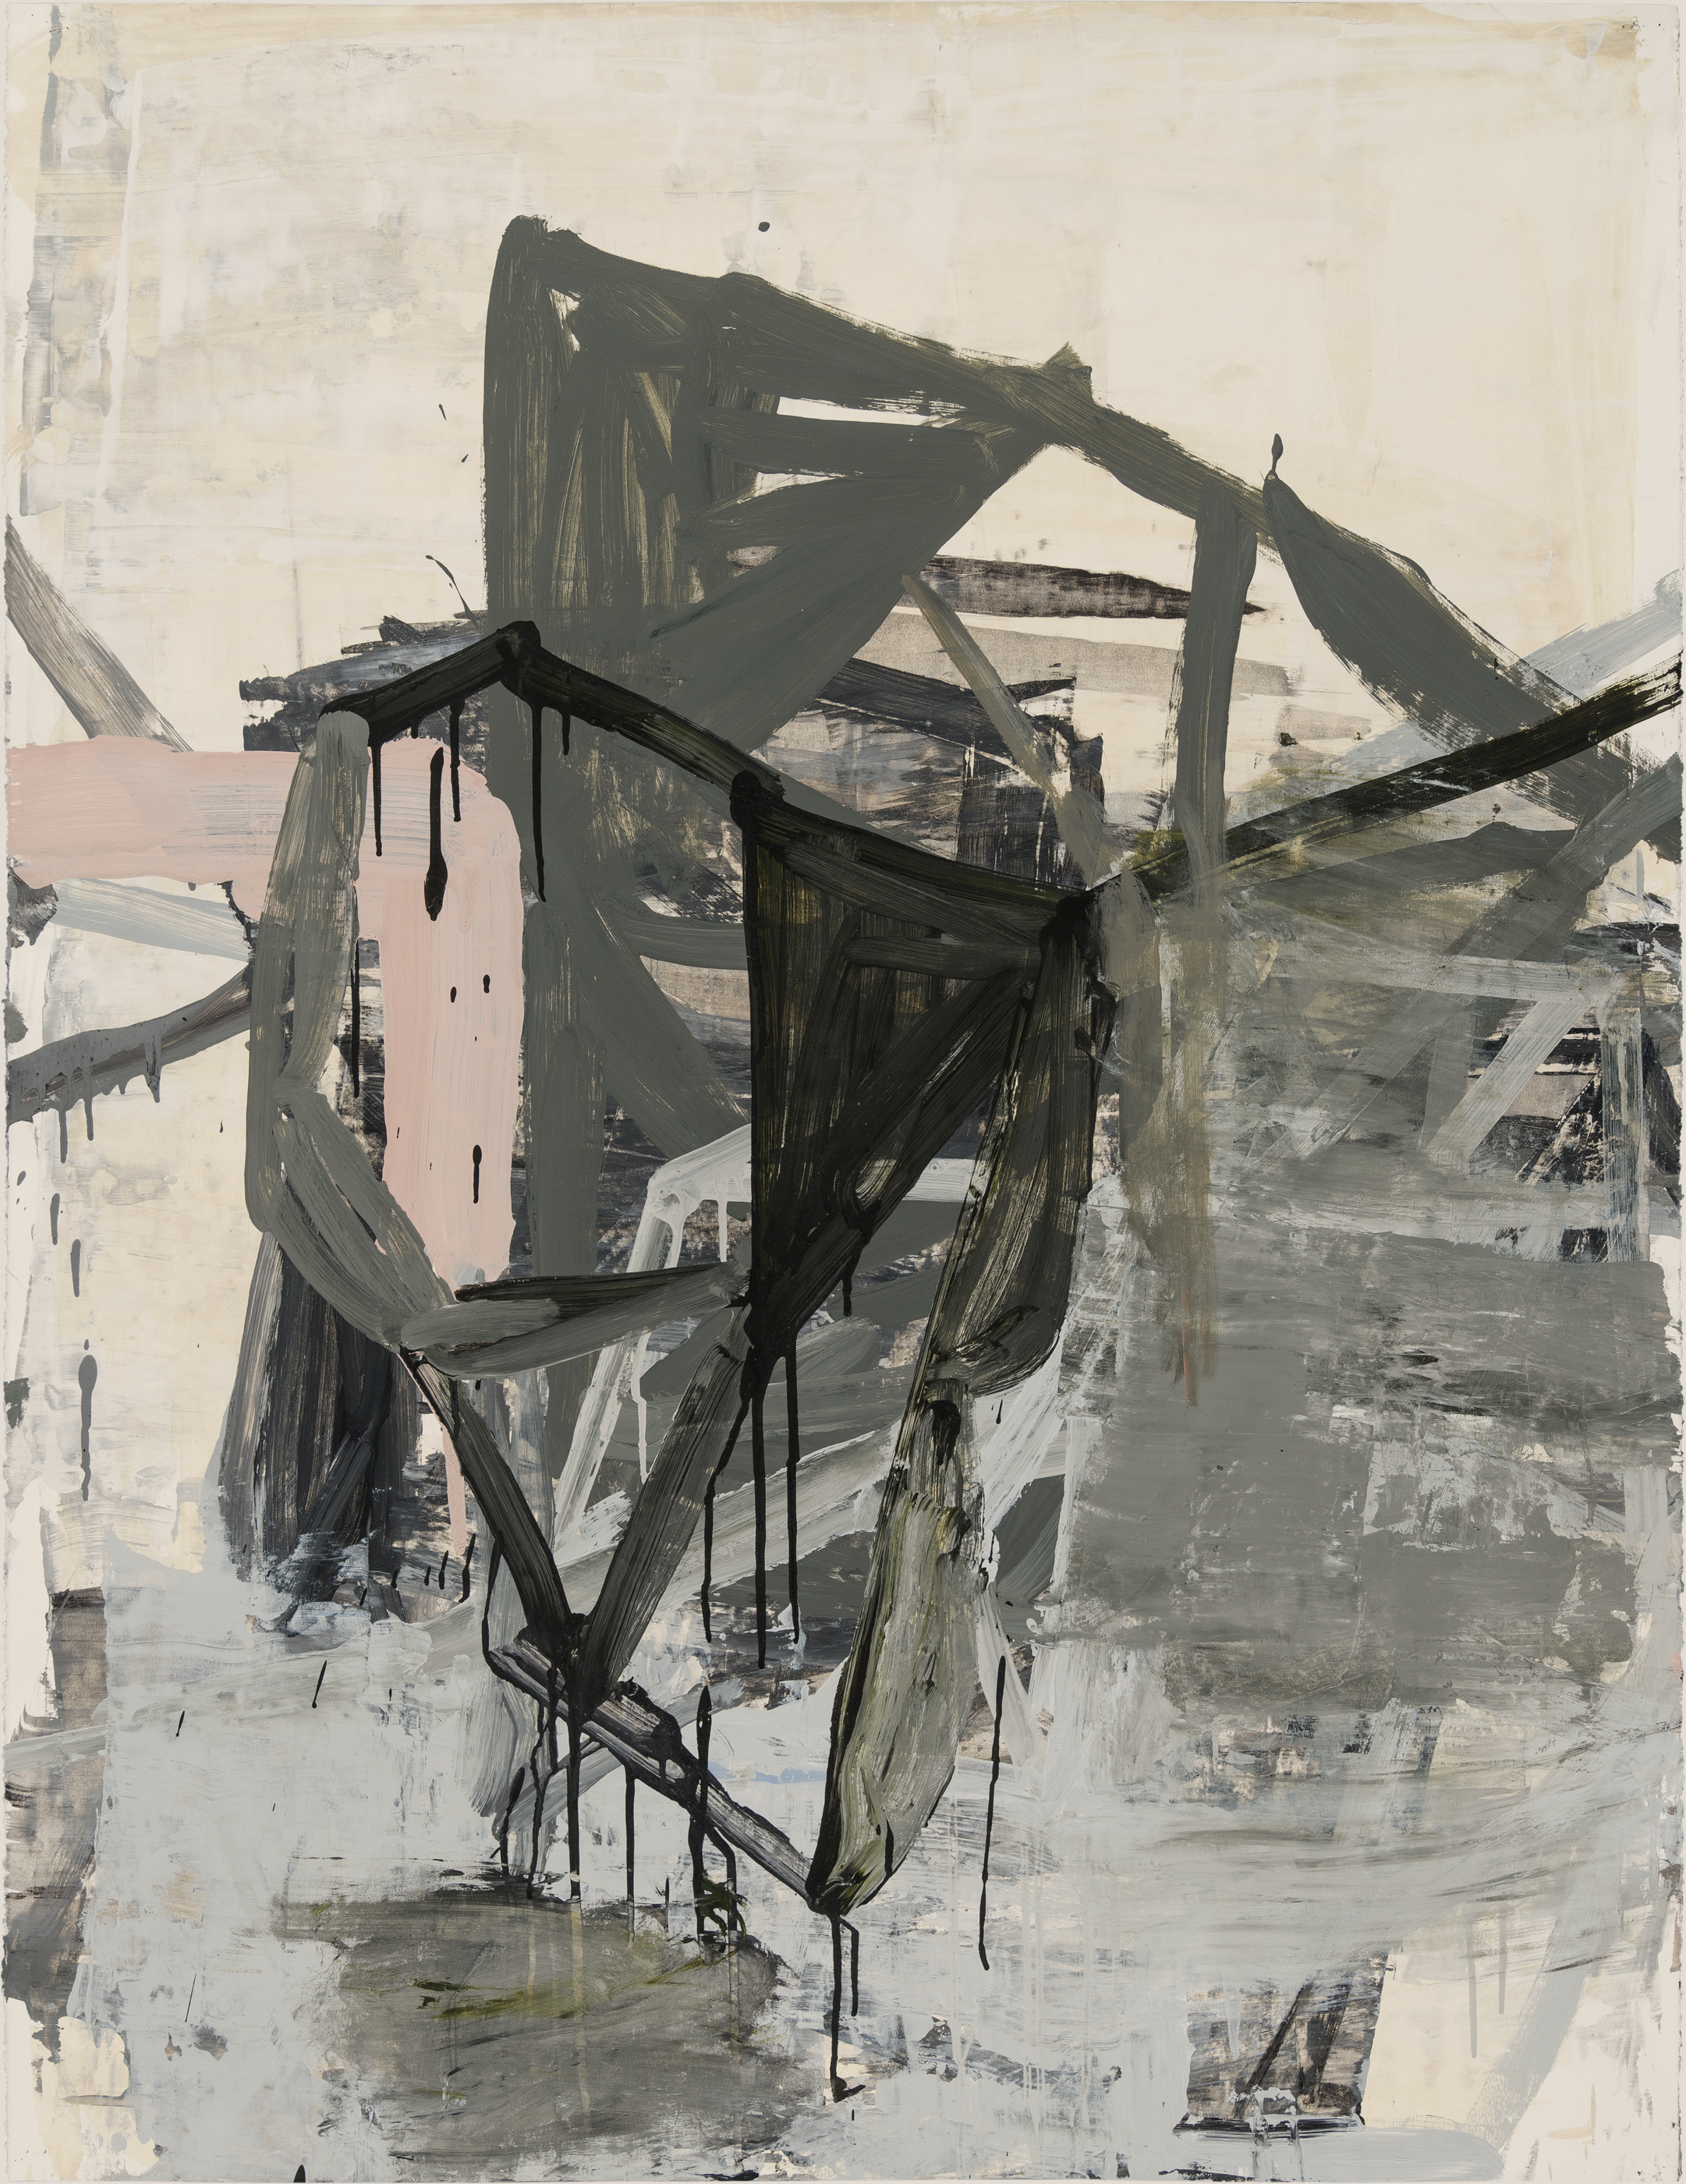 "Deborah Dancy, Winter into Spring 4, from the series ""Winter into Spring"", 2015. Charcoal, gesso, and acrylic on paper, 50 x 38 in. Photo by E. G. Schempf. Courtesy of the artist and Sears Peyton Gallery, New York, Los Angeles; © Deborah Dancy"